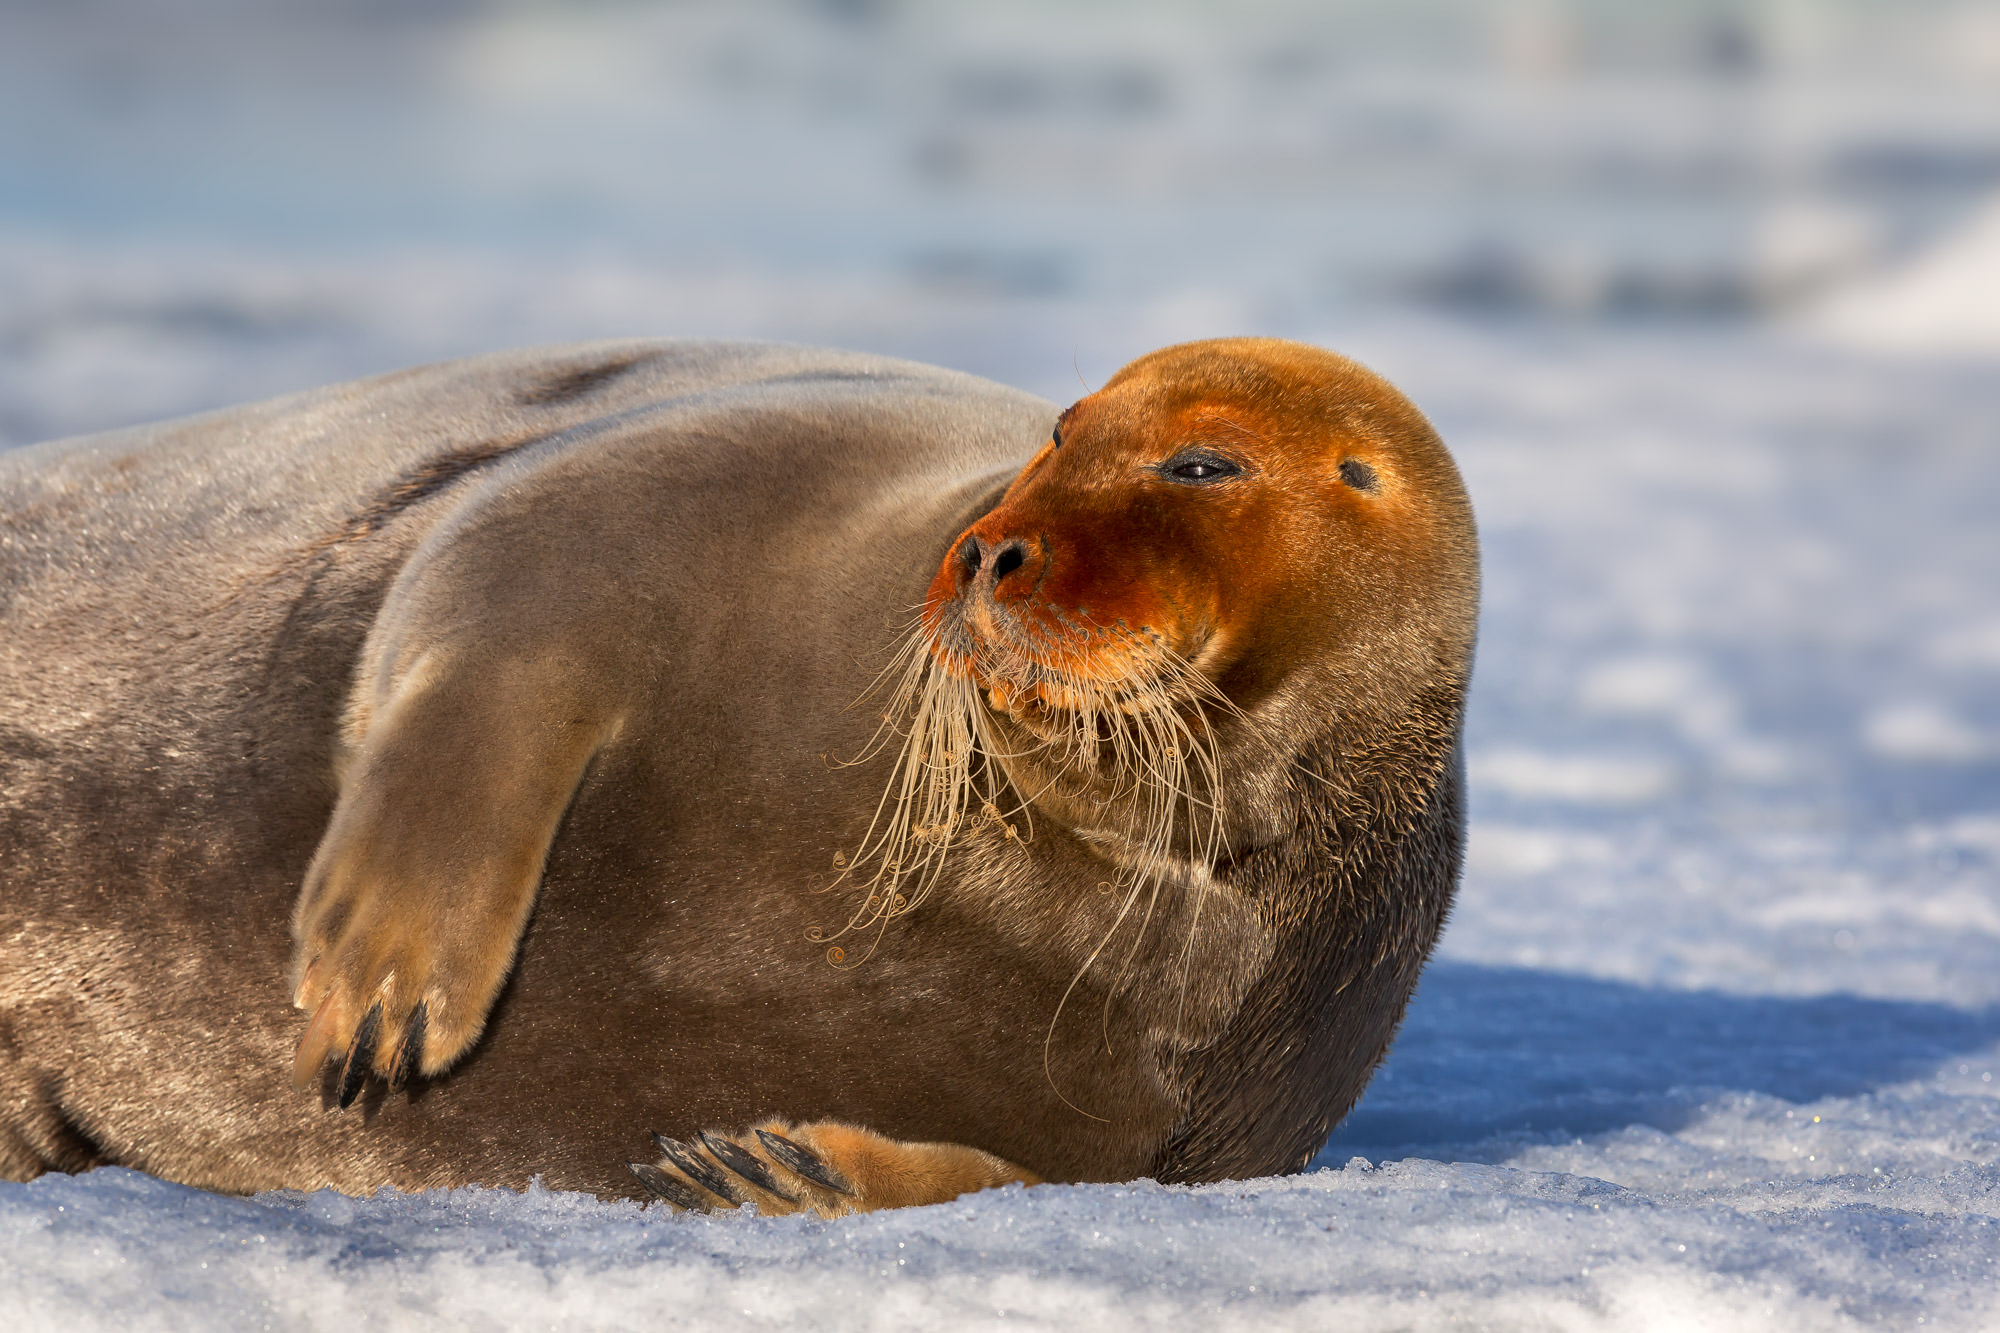 Seal, Bearded Seal, Norway, Spitsbergen, limited edition, photograph, fine art, wildlife, photo